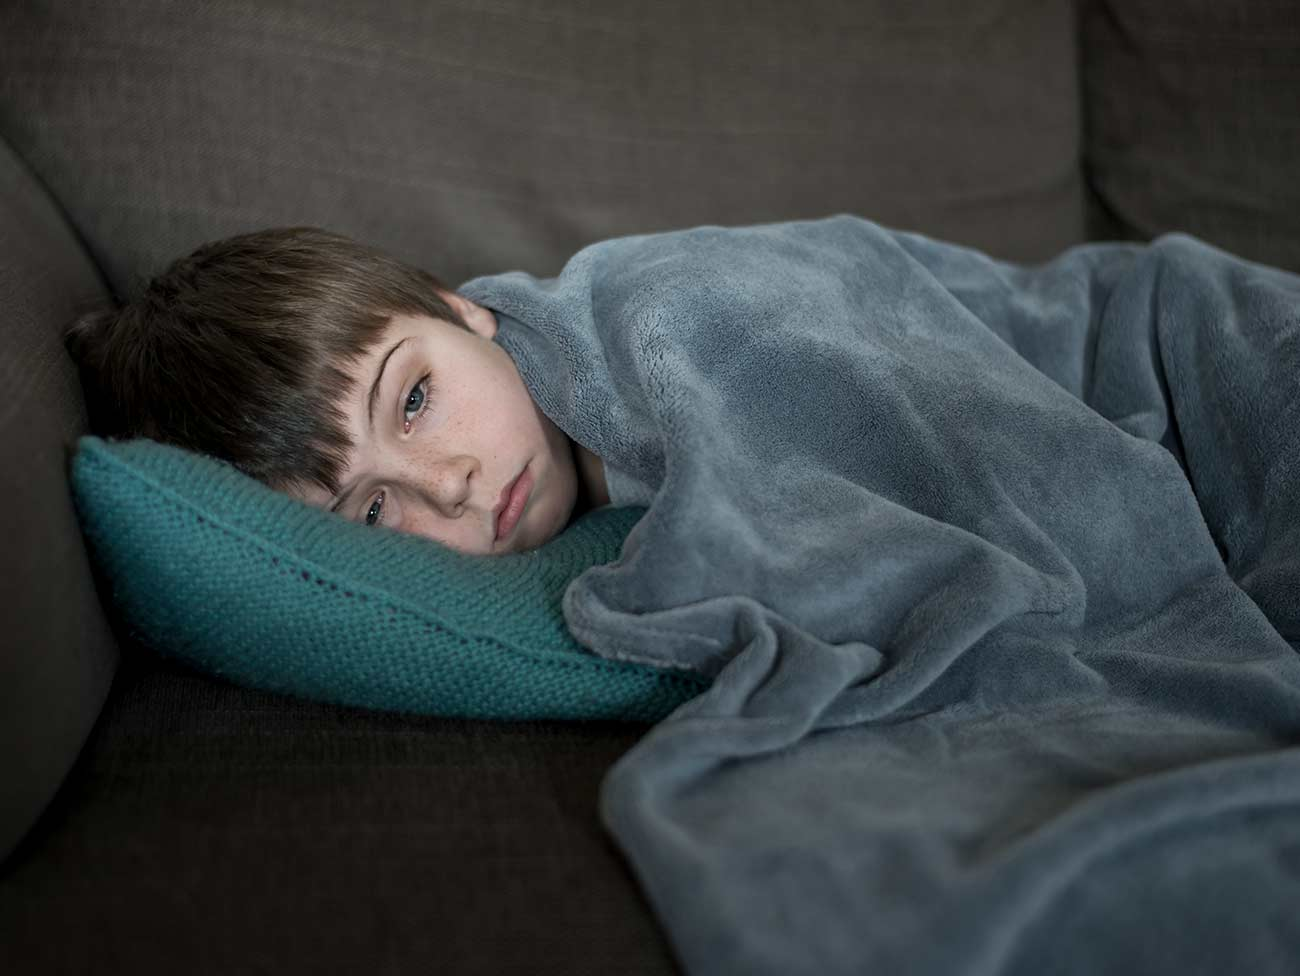 Boy with his head on a pillow under a blanket